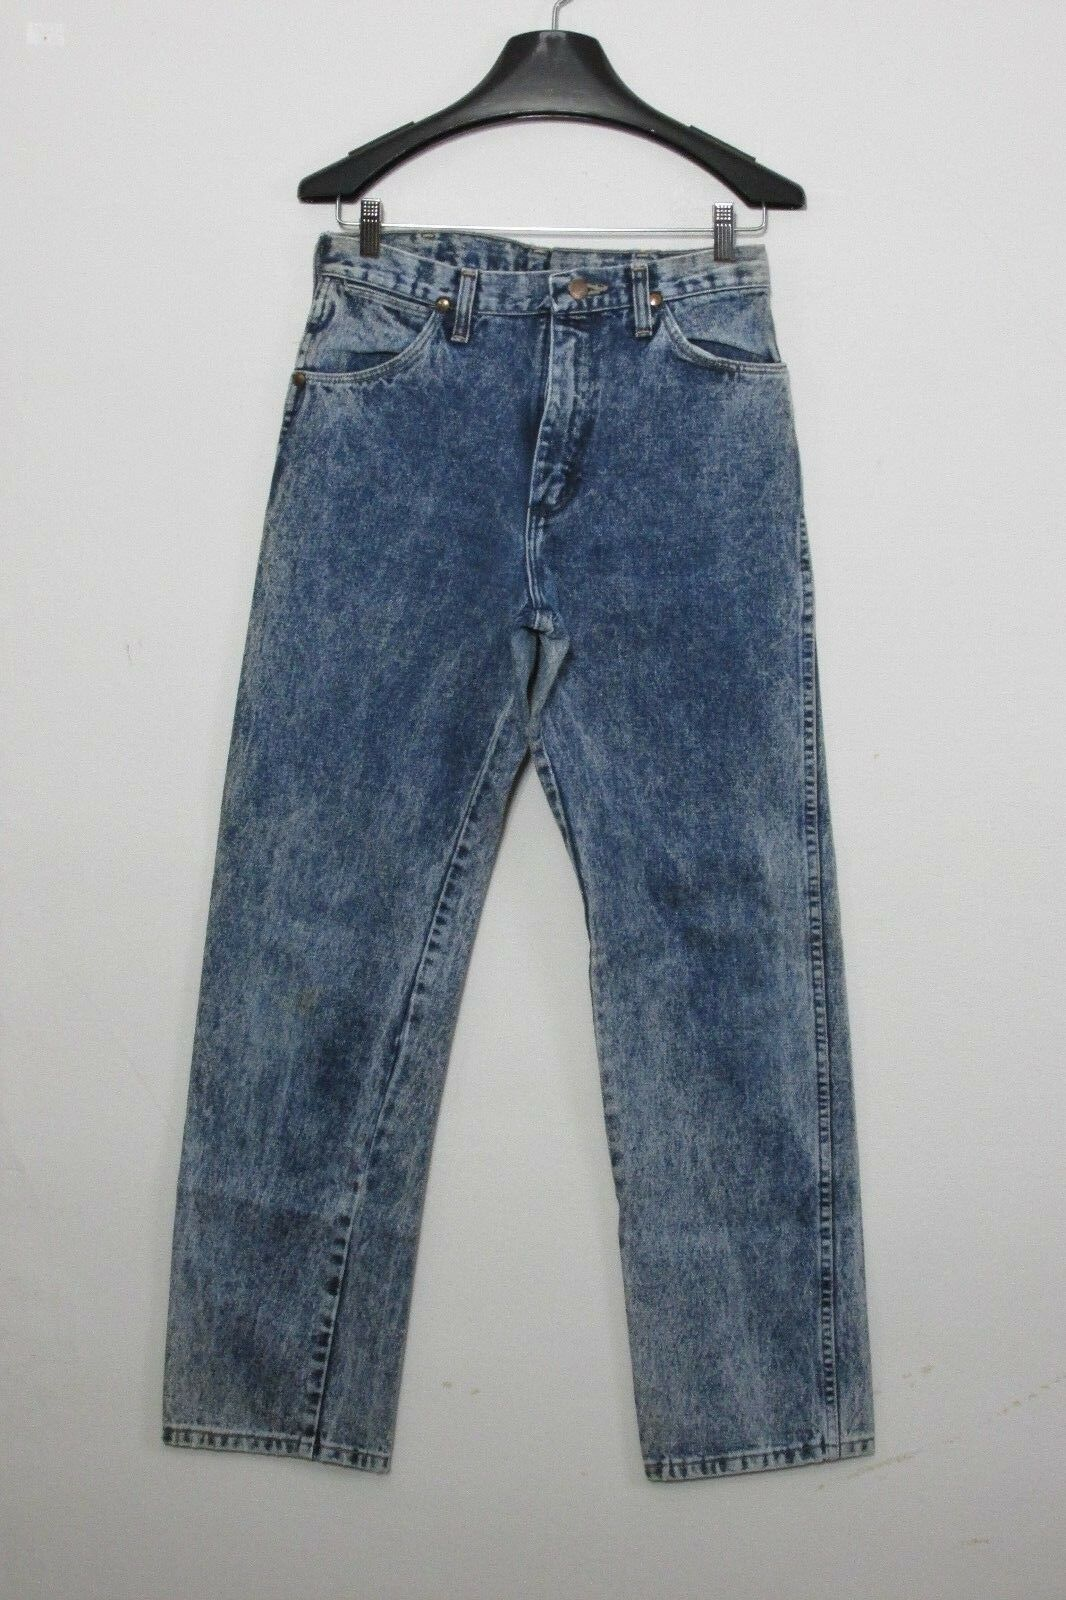 c7889756 Wrangler Jeans Acid Washed 1990s Men's Measured 30x31 Tag-31x34 Fade Inv  F3771